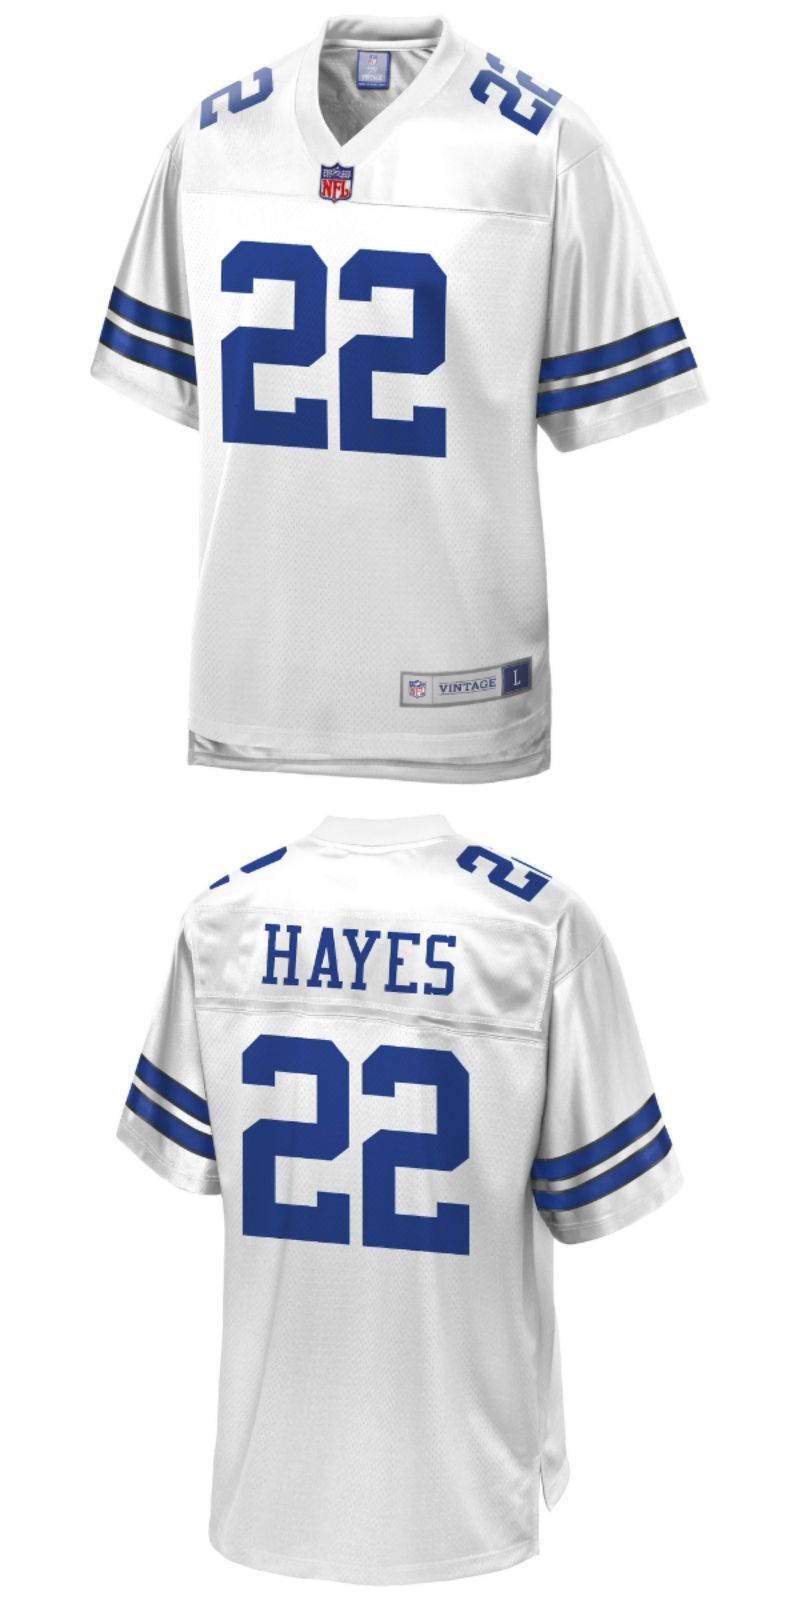 online store ac399 39aea 2019 的Bob Hayes Dallas Cowboys NFL Pro Line Retired Team ...